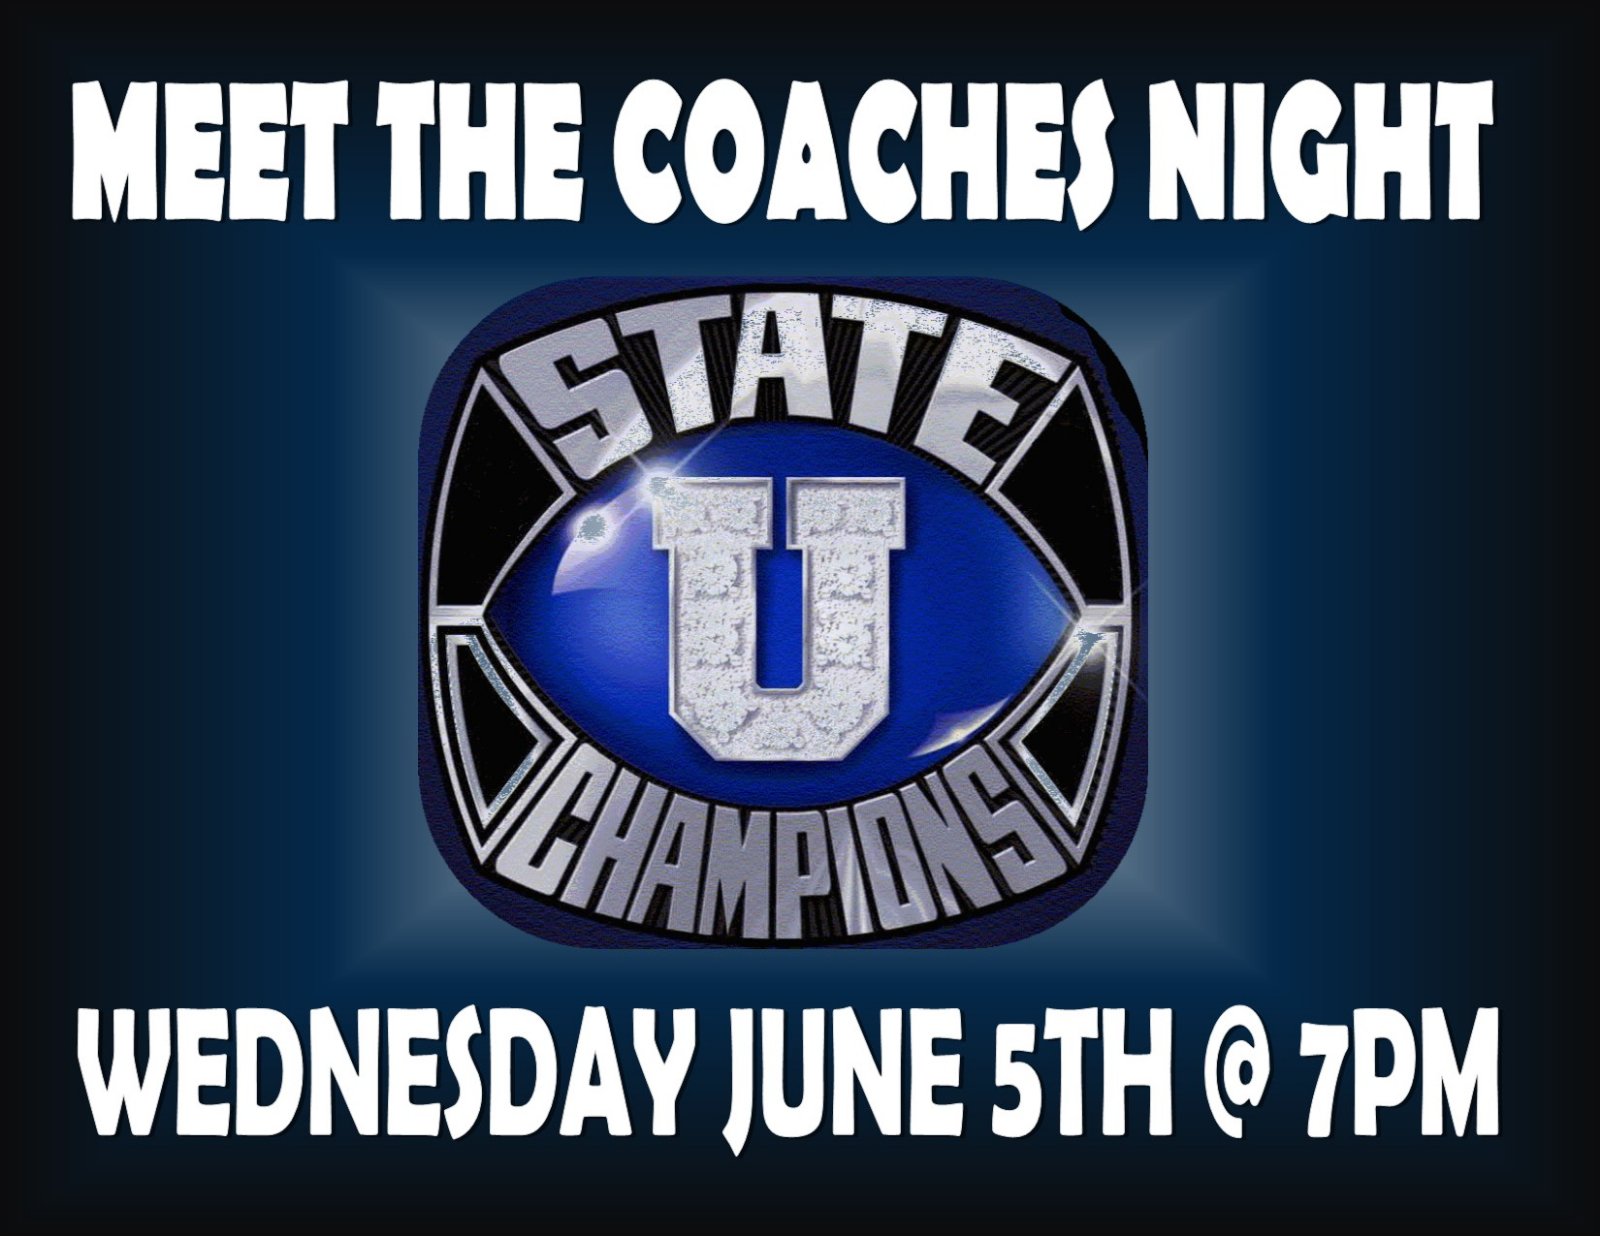 Meet the Coaches Night